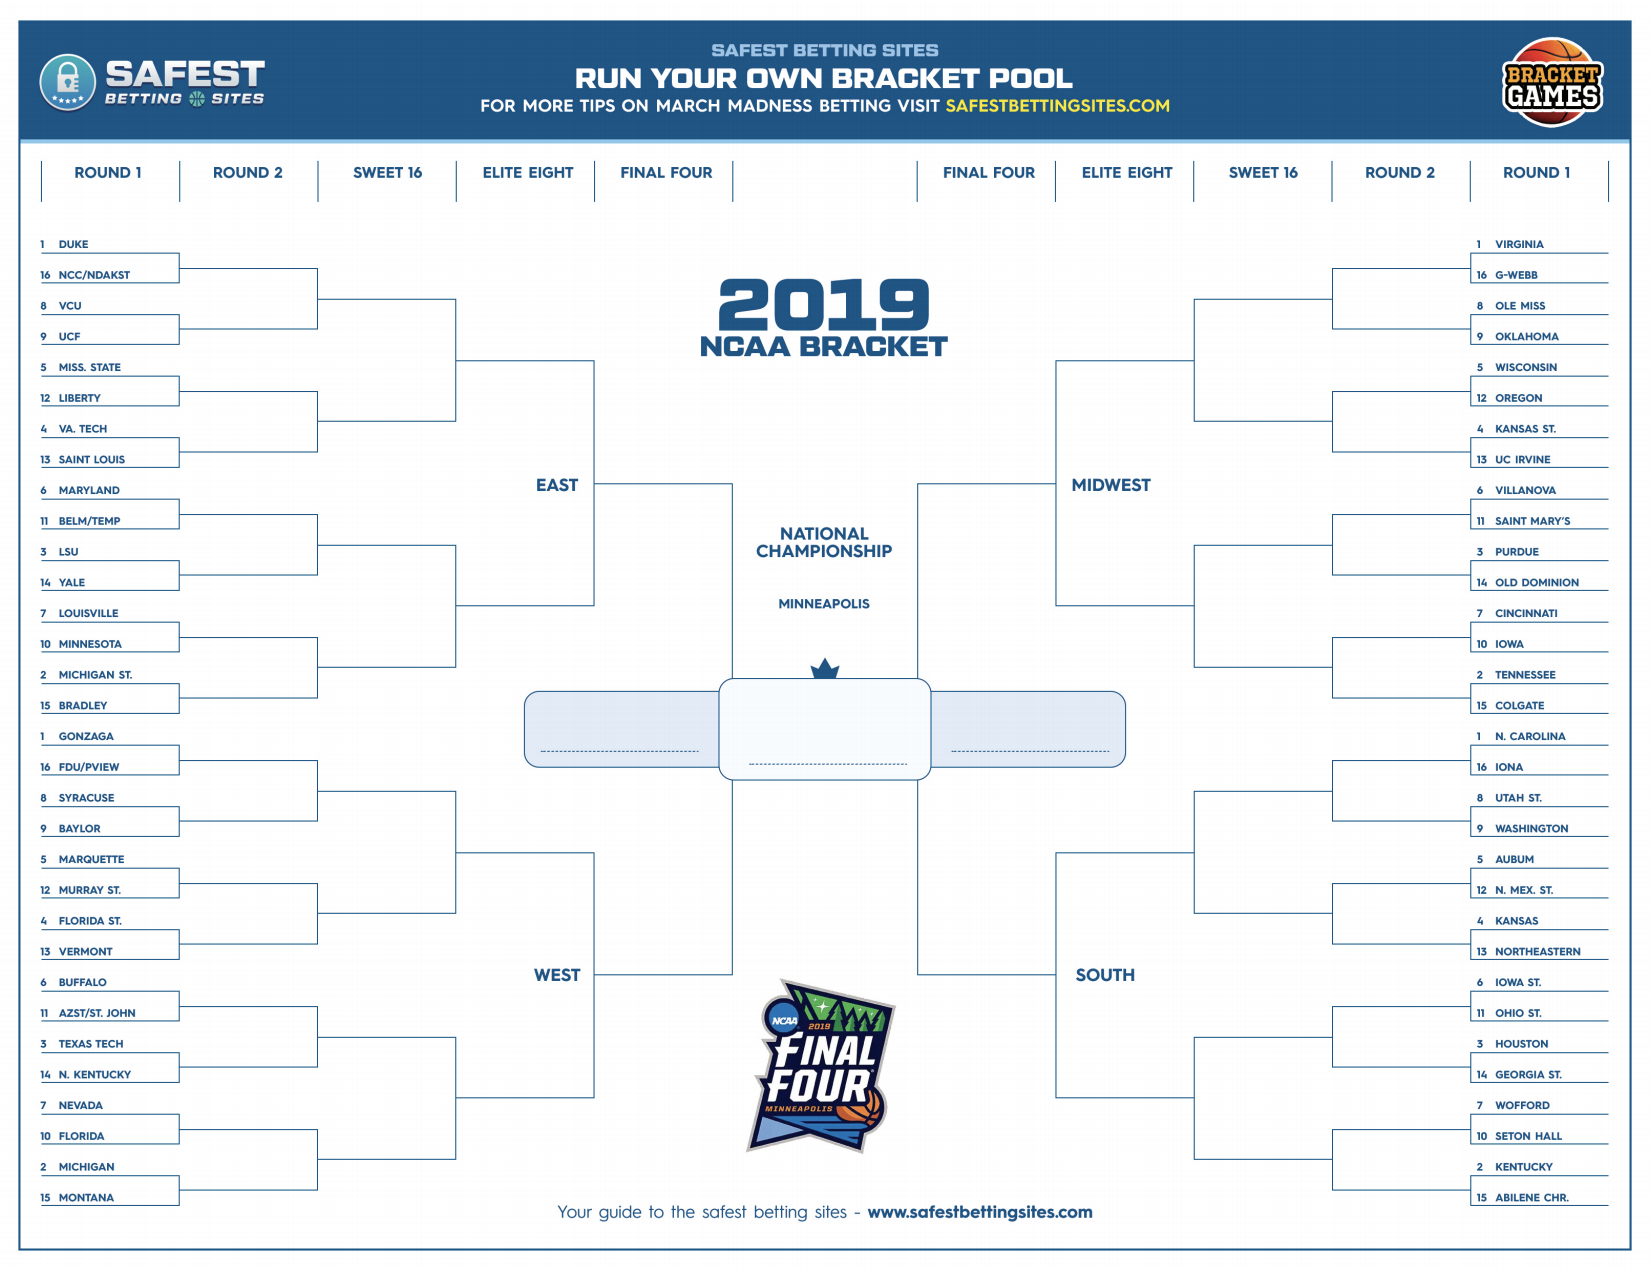 Bracket Challenge Template New March Madness 2019 Bracket Template - Free Printable Brackets